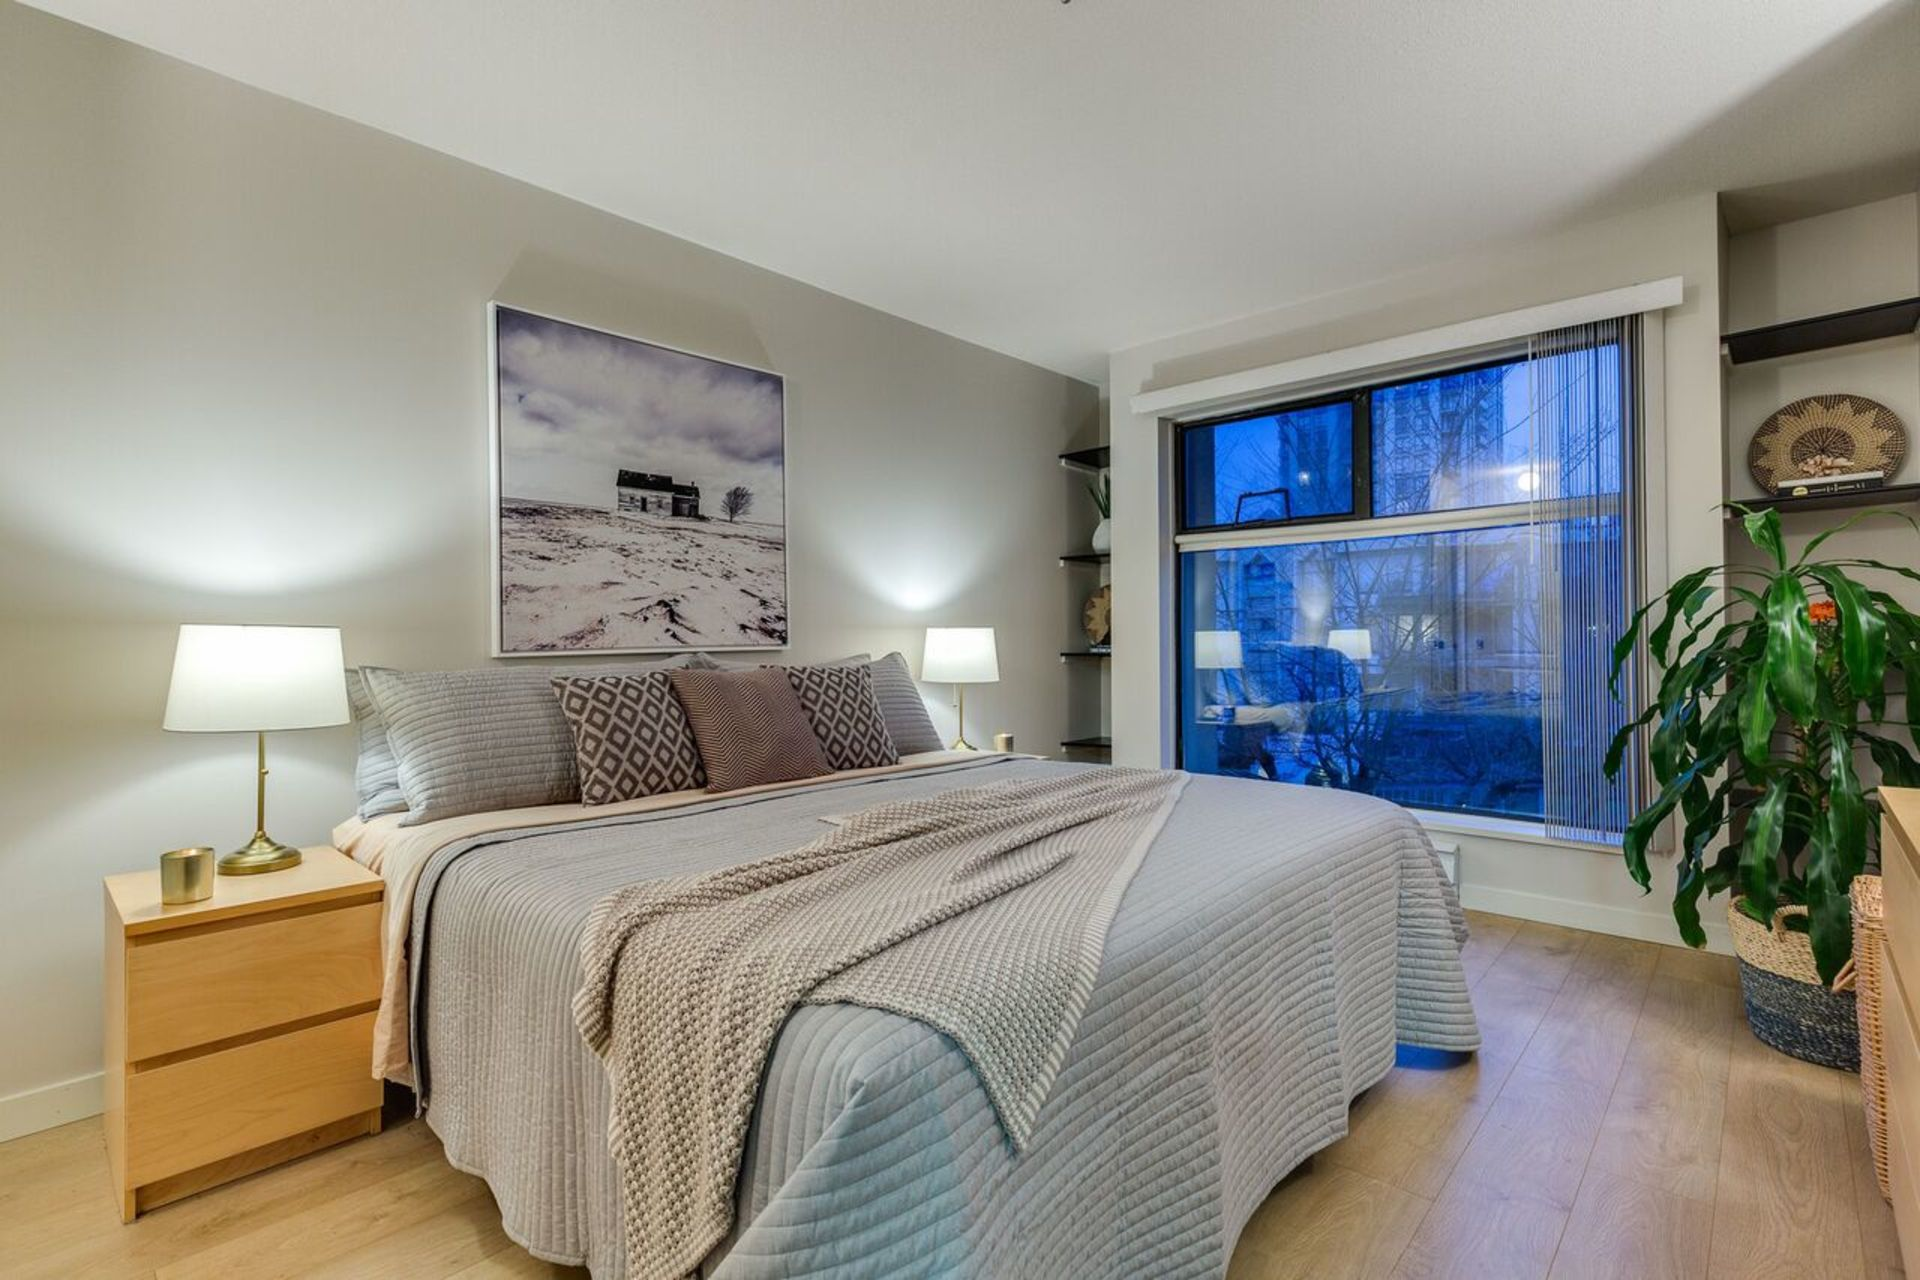 zrueuhoa at 309 - 2968 Burlington Drive, North Coquitlam, Coquitlam